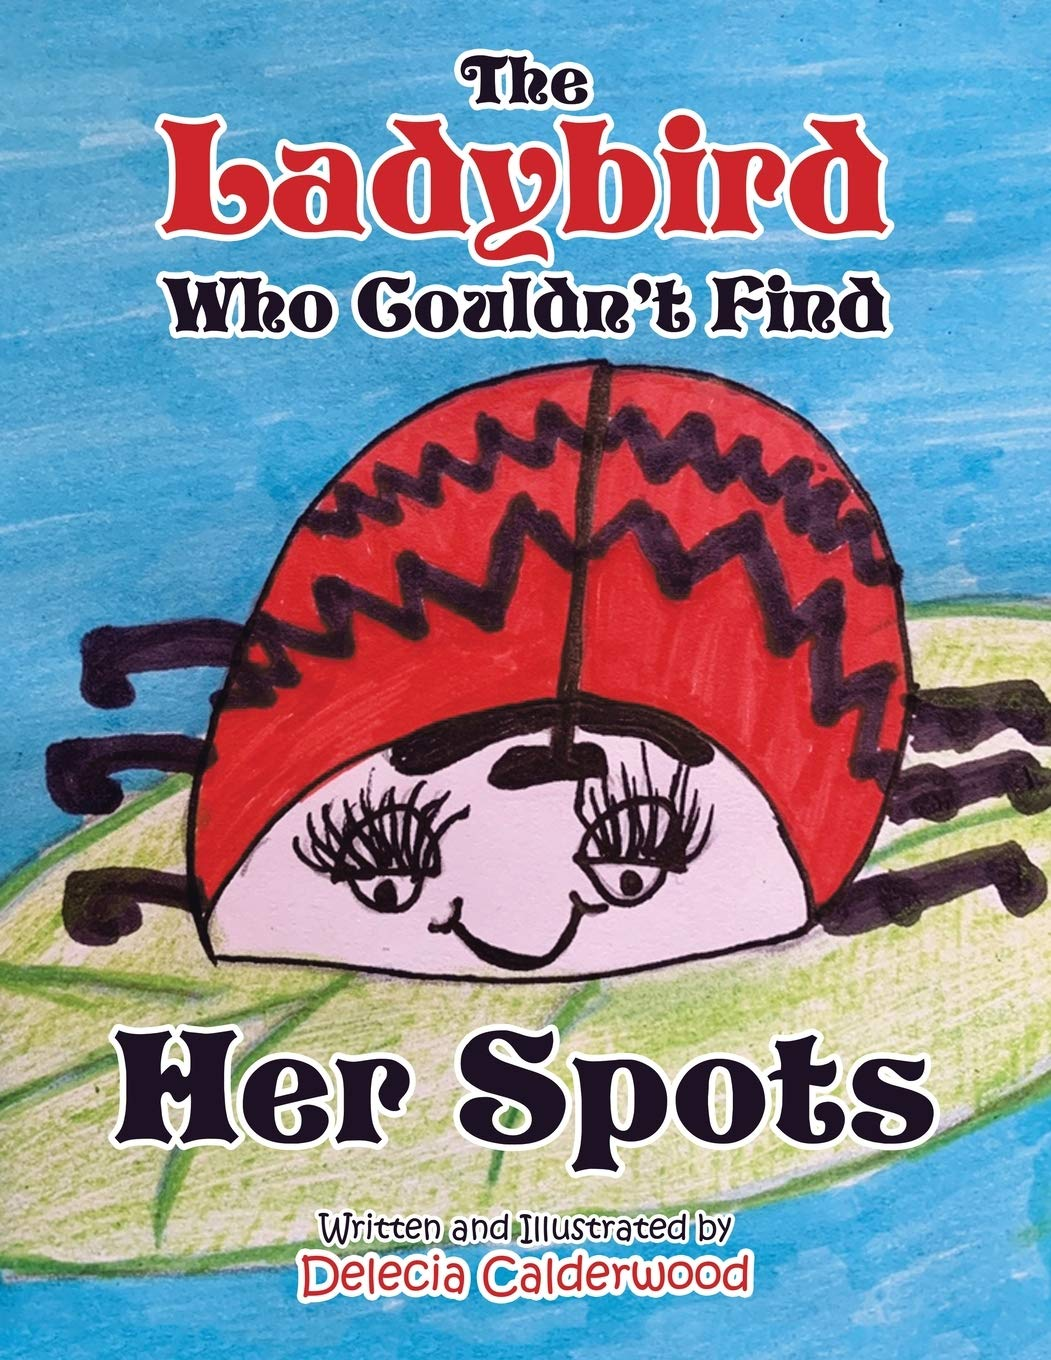 The Ladybird Who Couldn't Find Her Spots